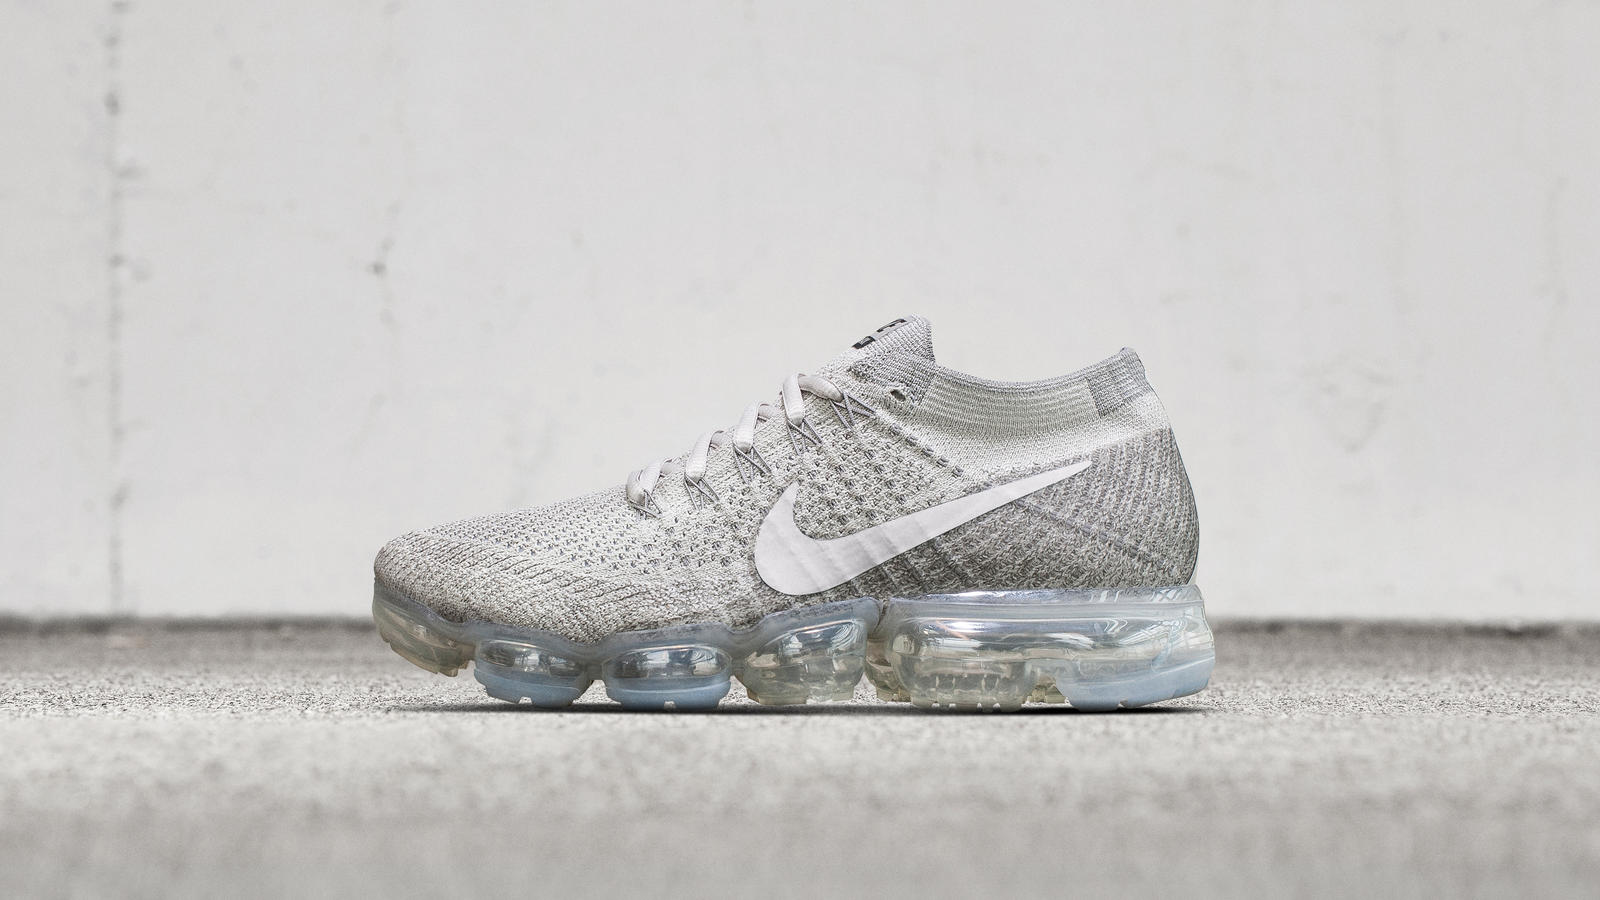 919d39a1644 Nike Air VaporMax - Nike News